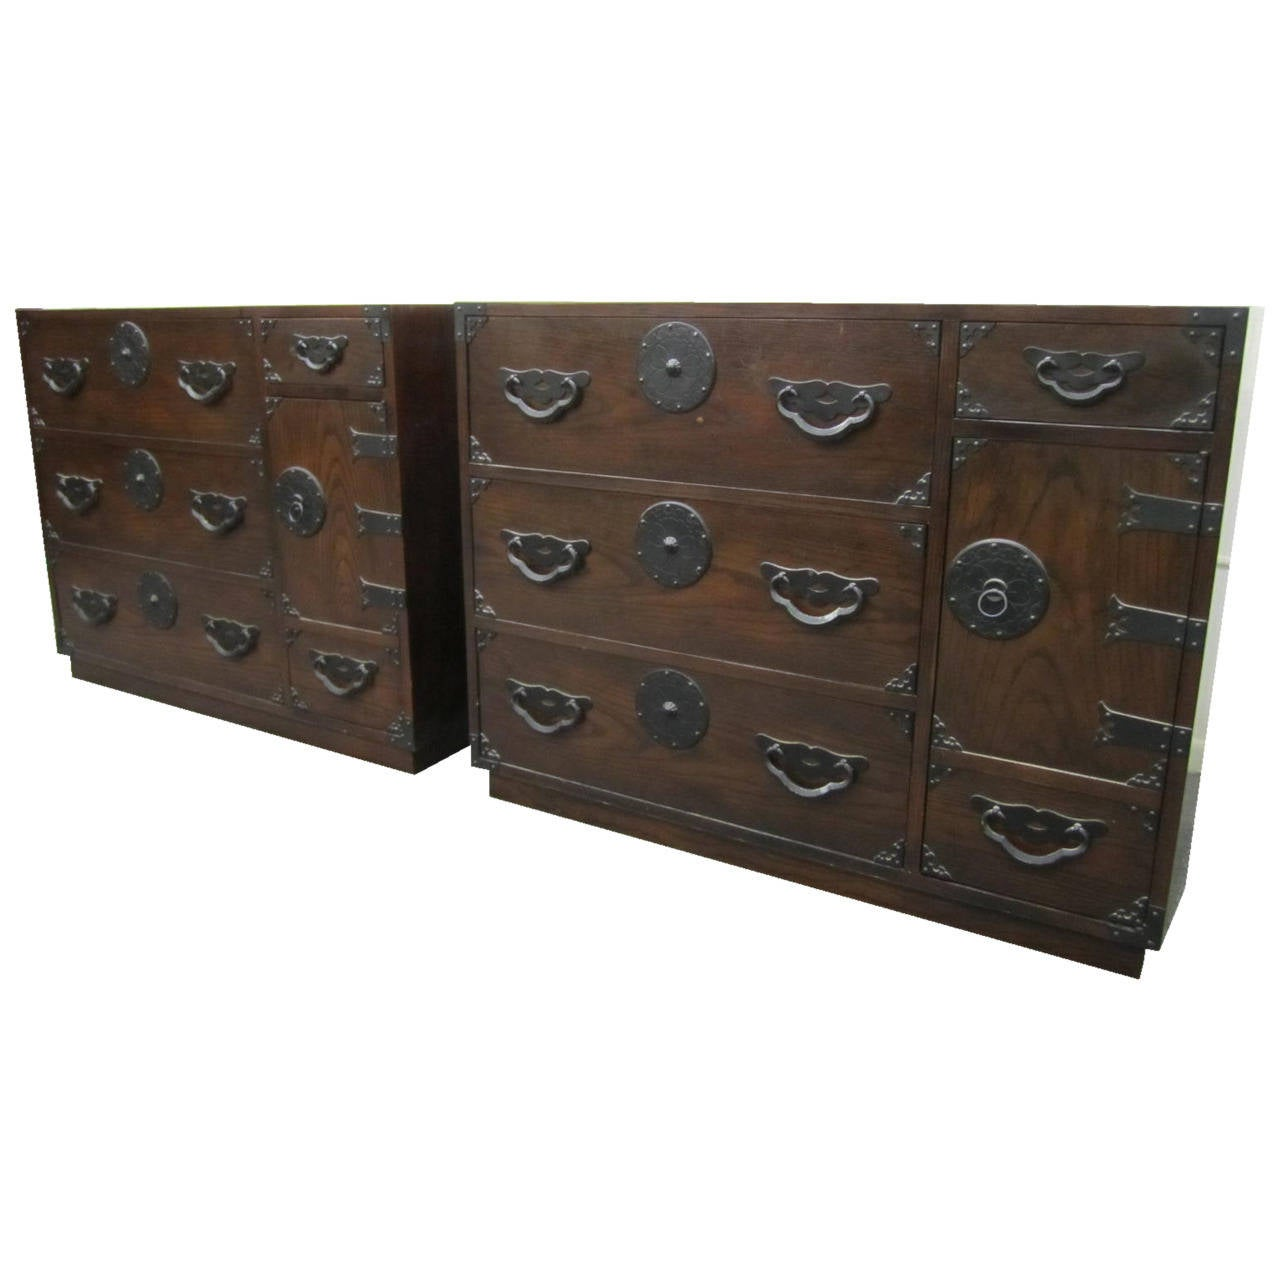 Exciting Pair Of Baker Modern Asian Tansu Chest Cabinets, Mid Century Modern